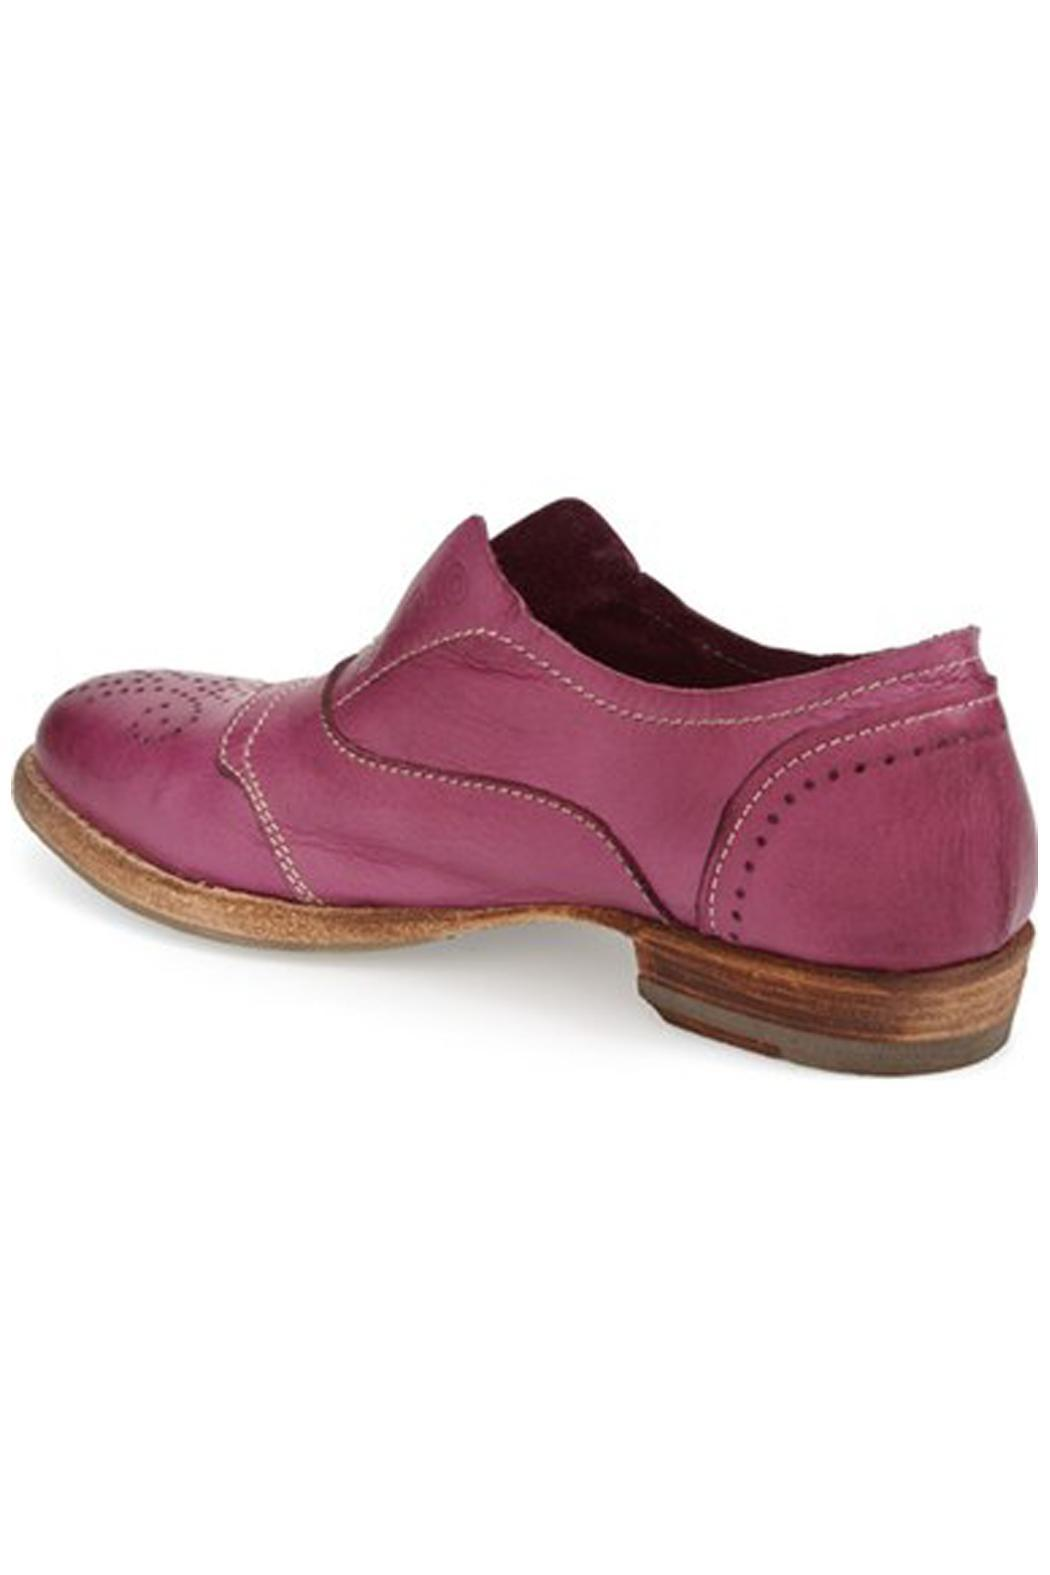 Blackstone Plymouth Leather Oxford From Cleveland By Amy S